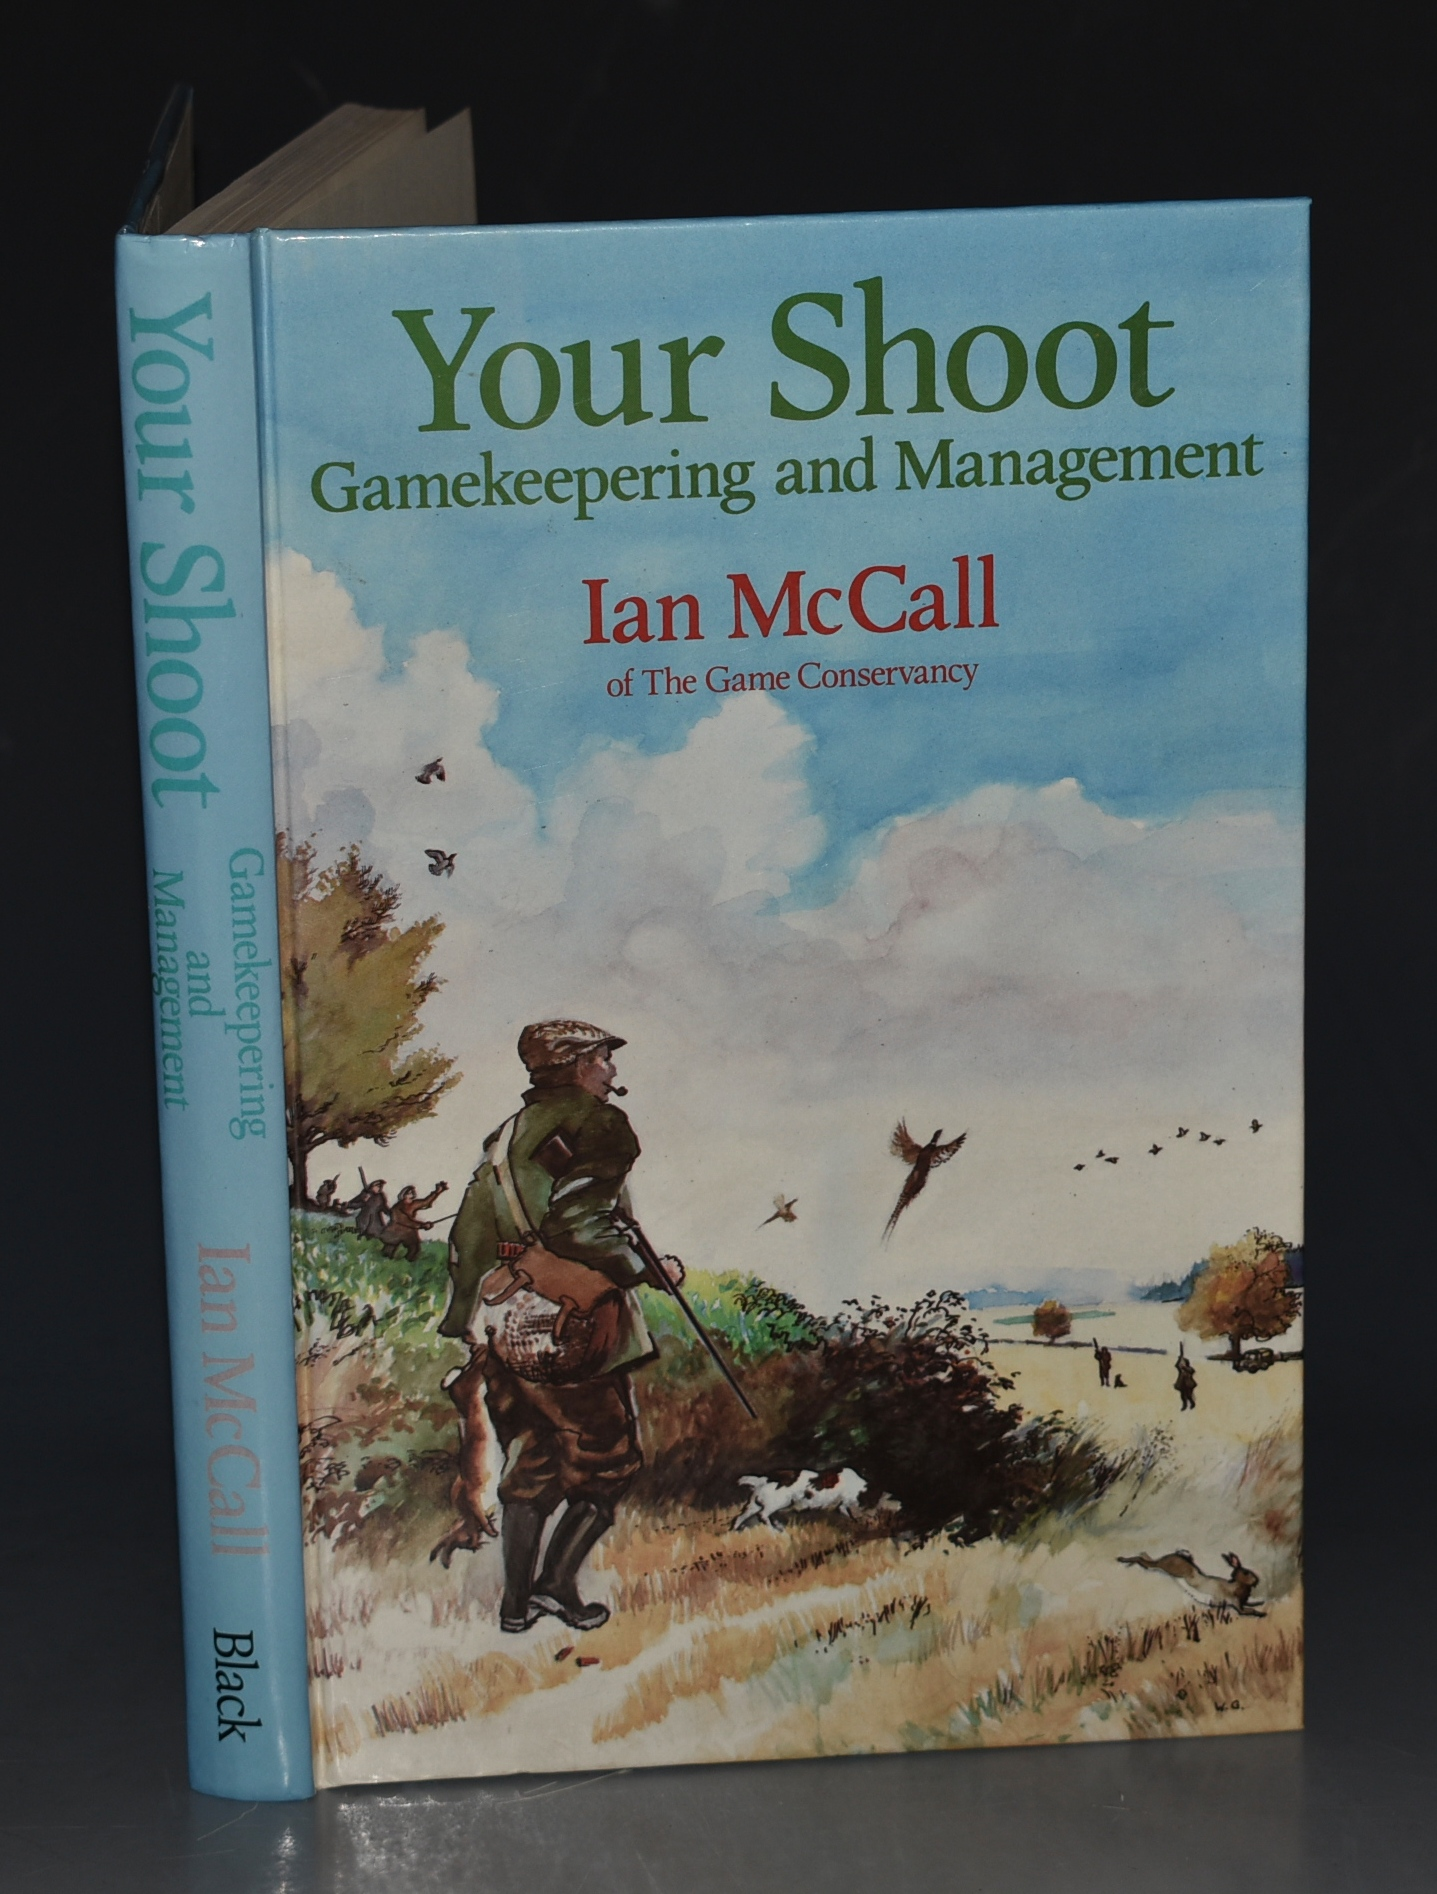 Image for Your Shoot Gamekeeping and Management. Drawings by Will Garfit. SIGNED.